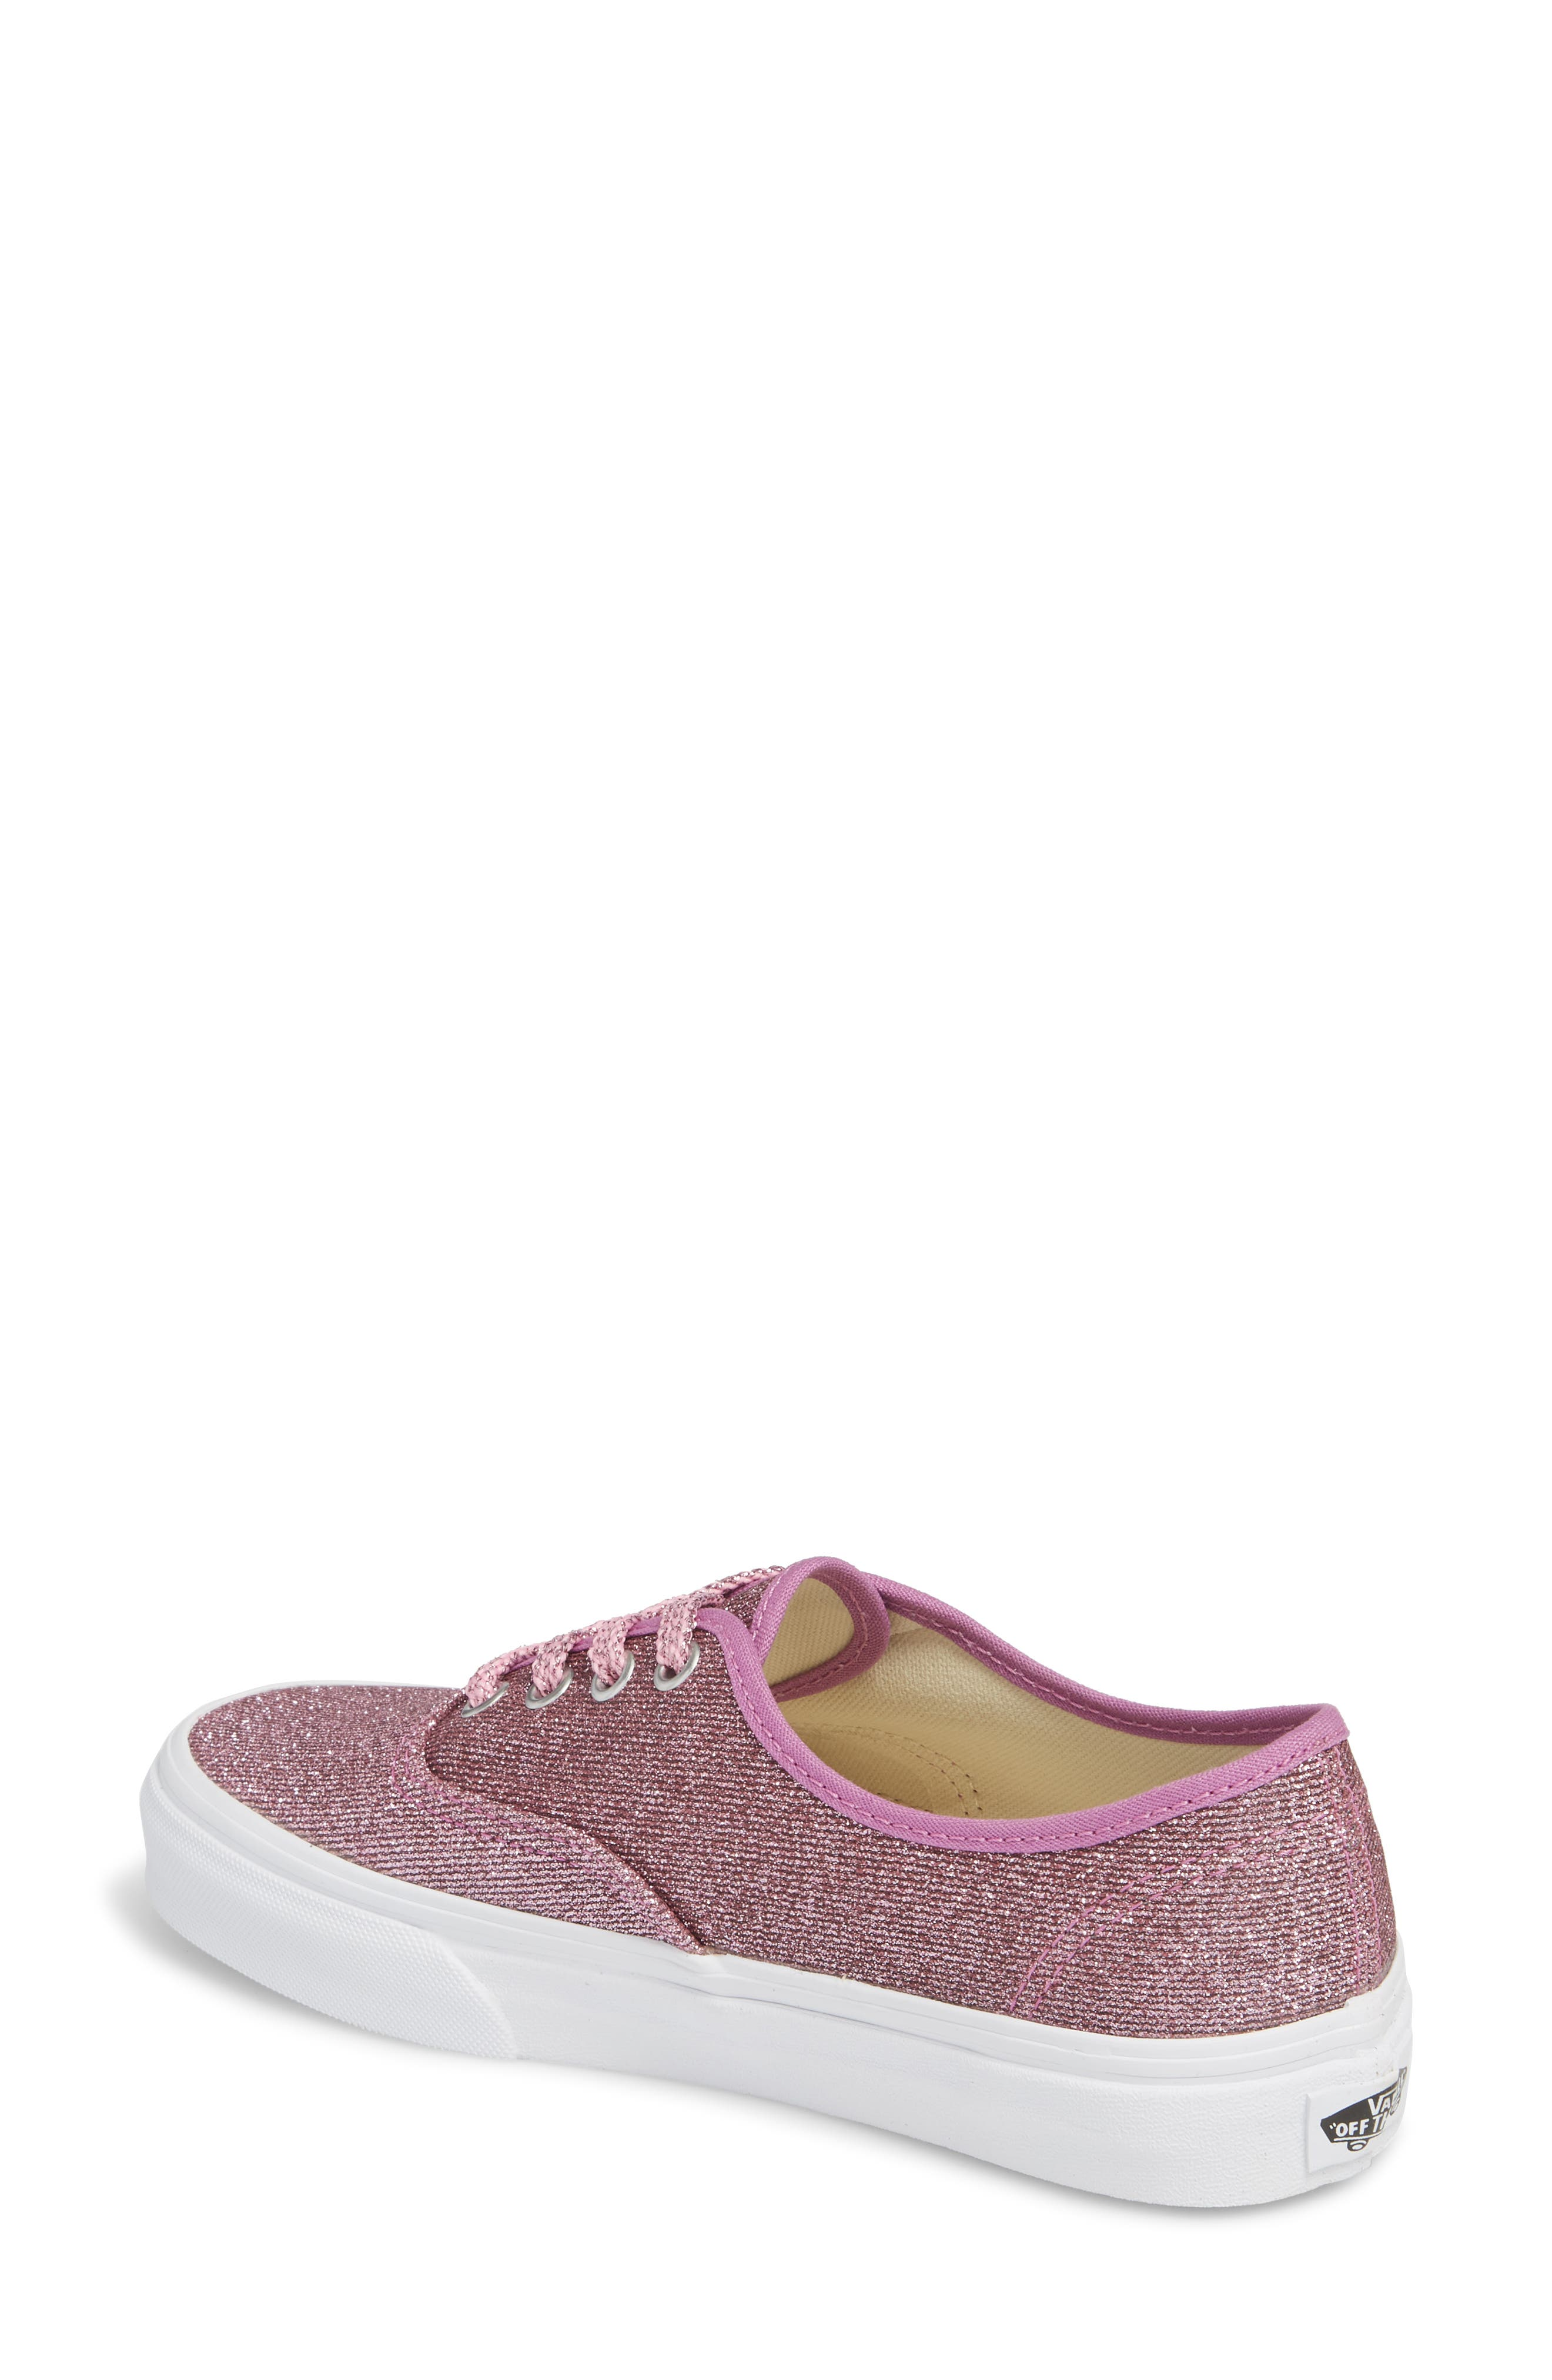 UA Authentic Lurex Sneaker,                             Alternate thumbnail 2, color,                             Pink/ True White Glitter